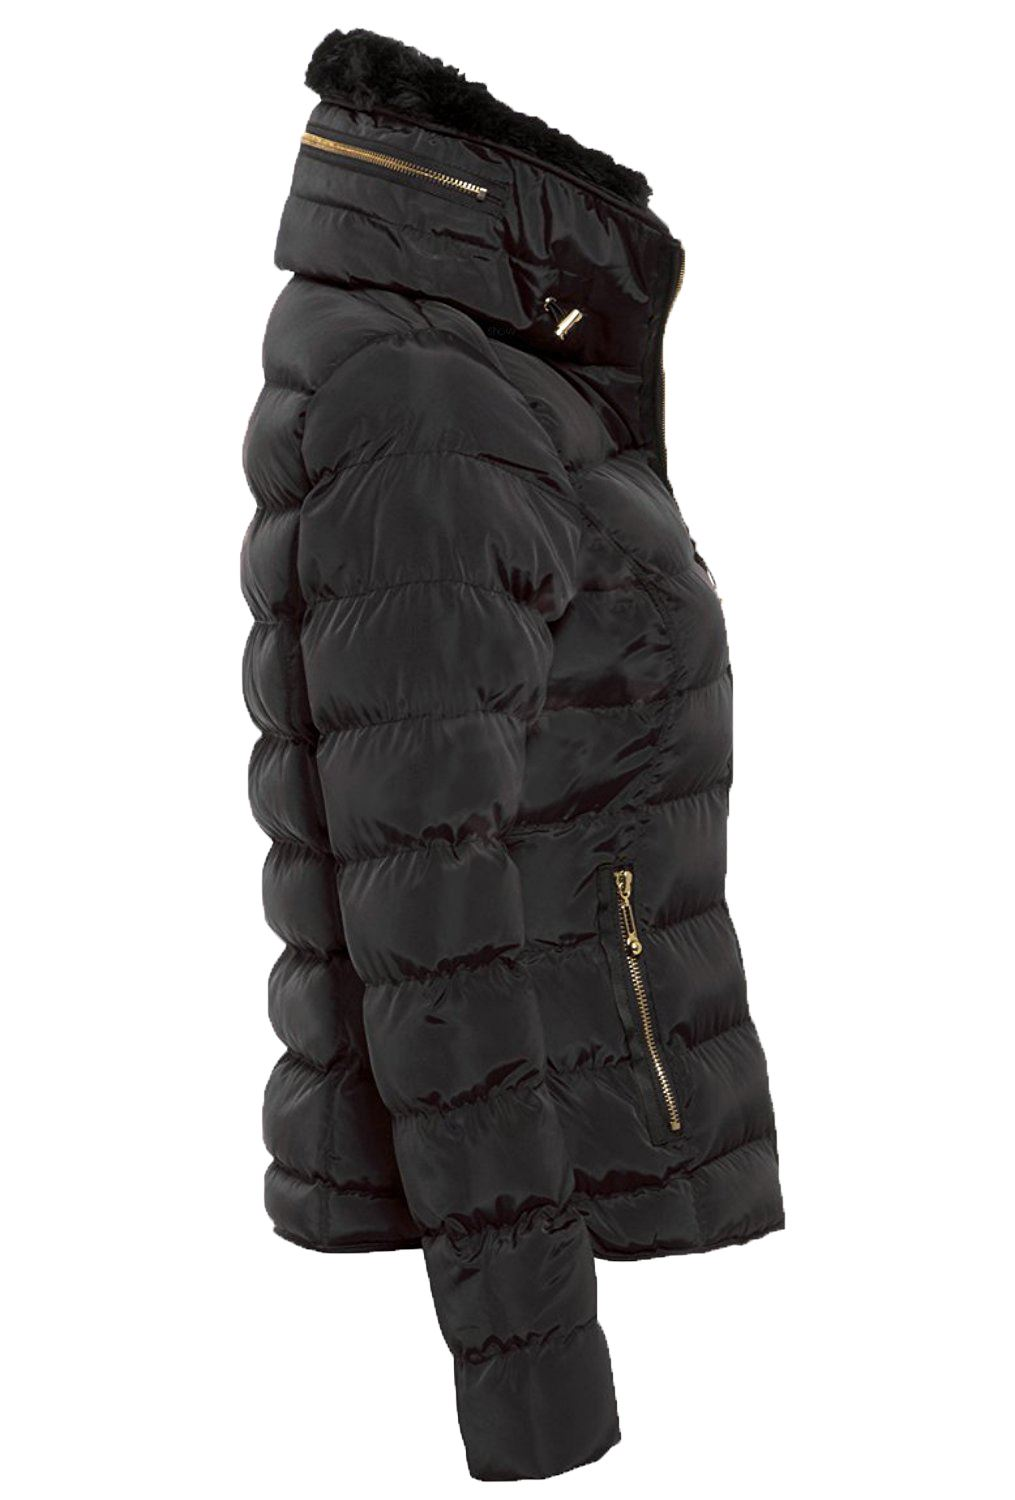 Our extensive women's coats collection. A wide range of stylish coats for autumn and winter are available at the Women's Coats store. When the weather .